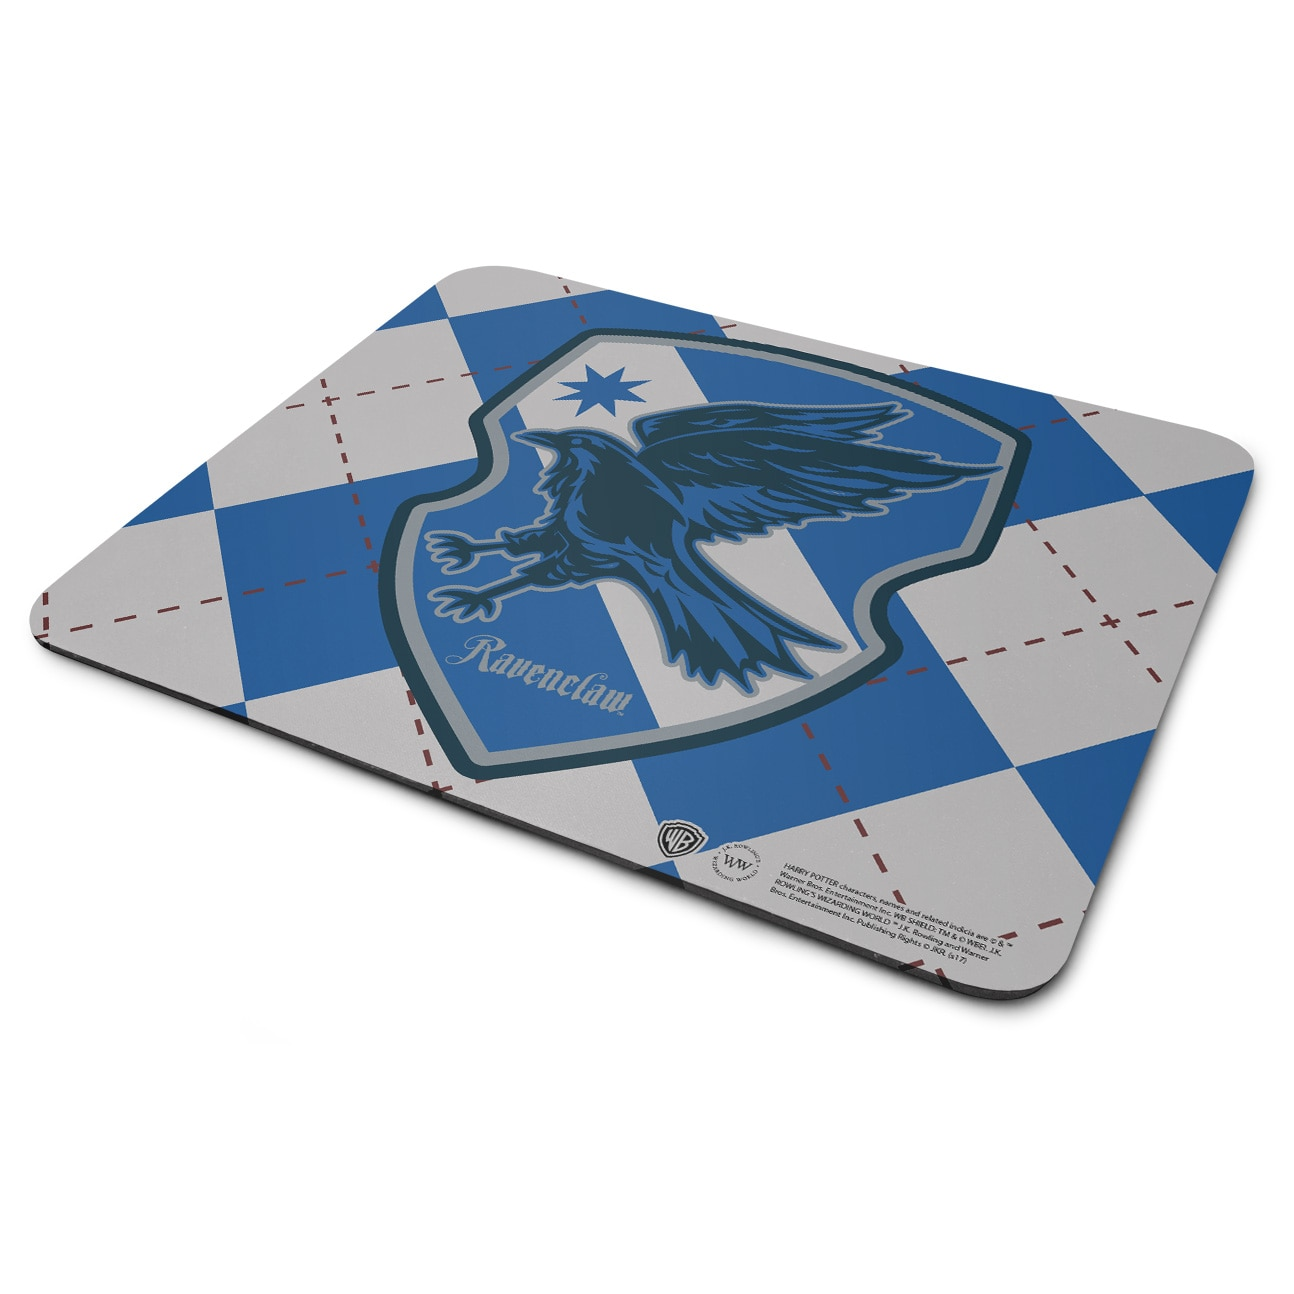 Ravenclaw Mouse Pad 3-Pack